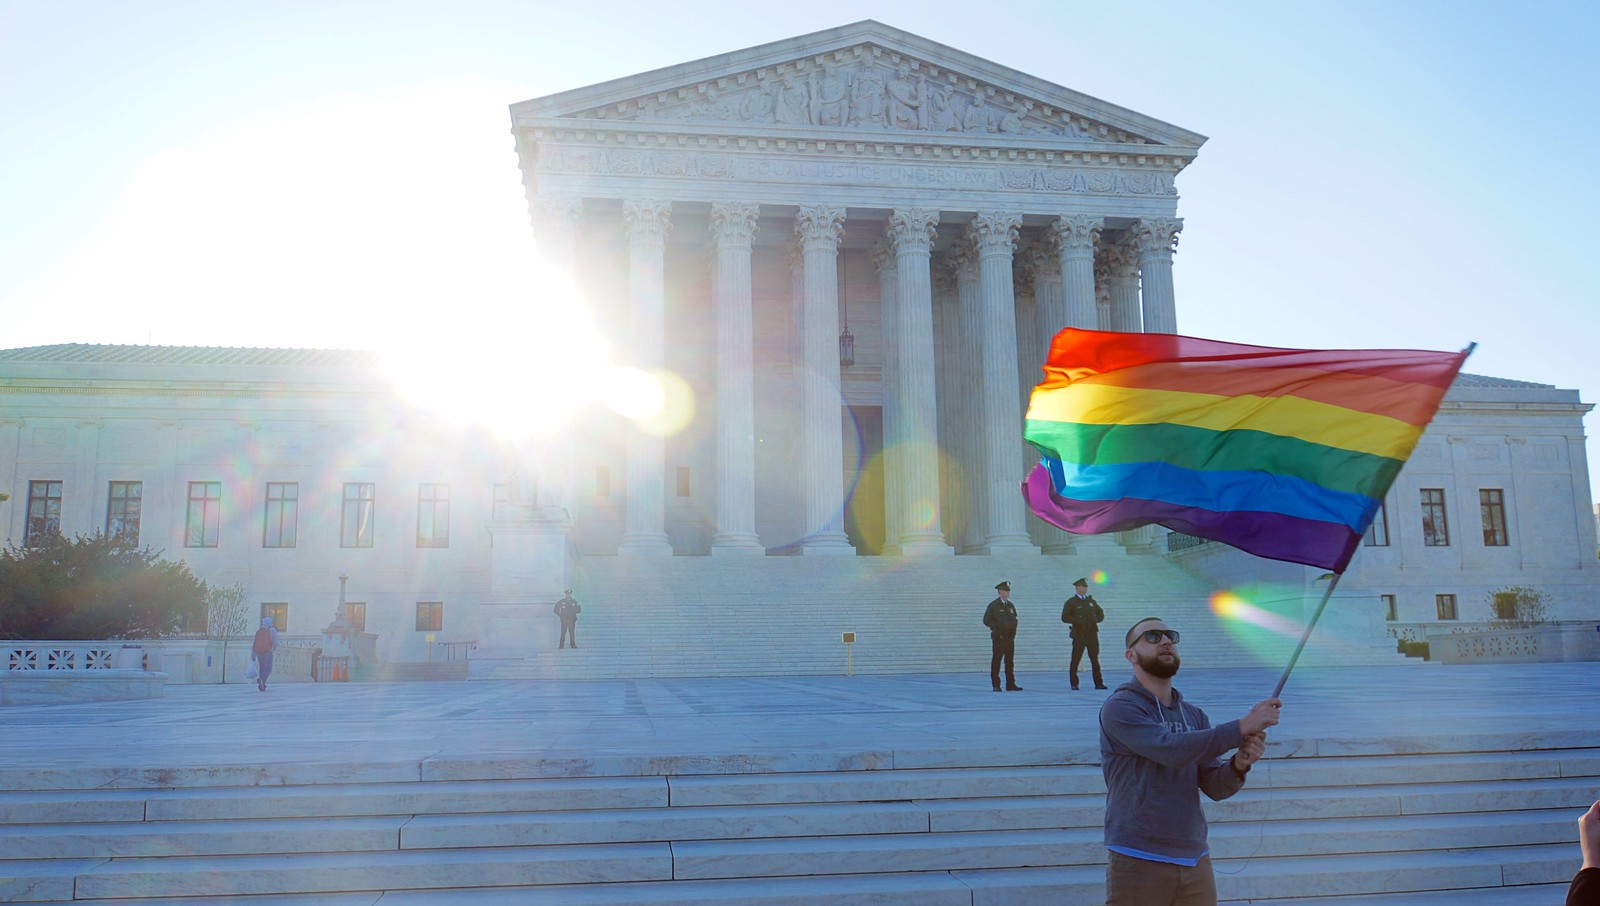 A few photos taken on the way to the future #SCOTUS #LoveMustWin #WalkingMeeting